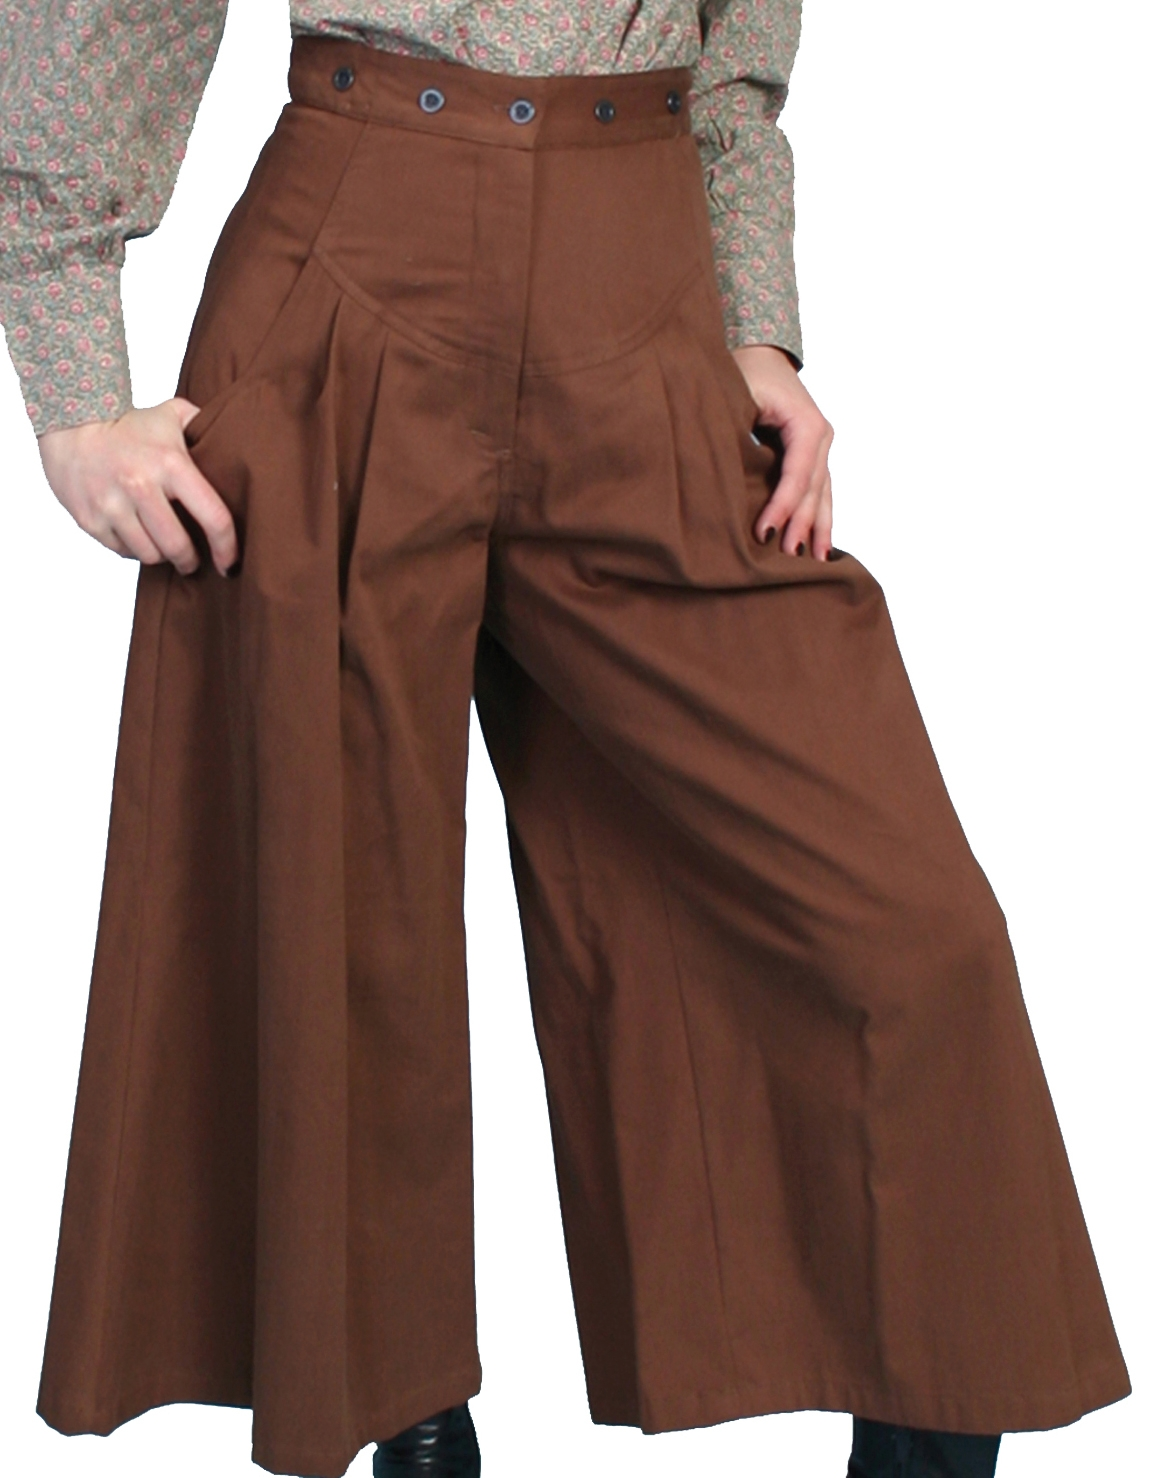 Scully USA made Womens Brown pleated riding pants, Scully Womens riding pants, riding pants for women, western riding pants, usa made riding pants